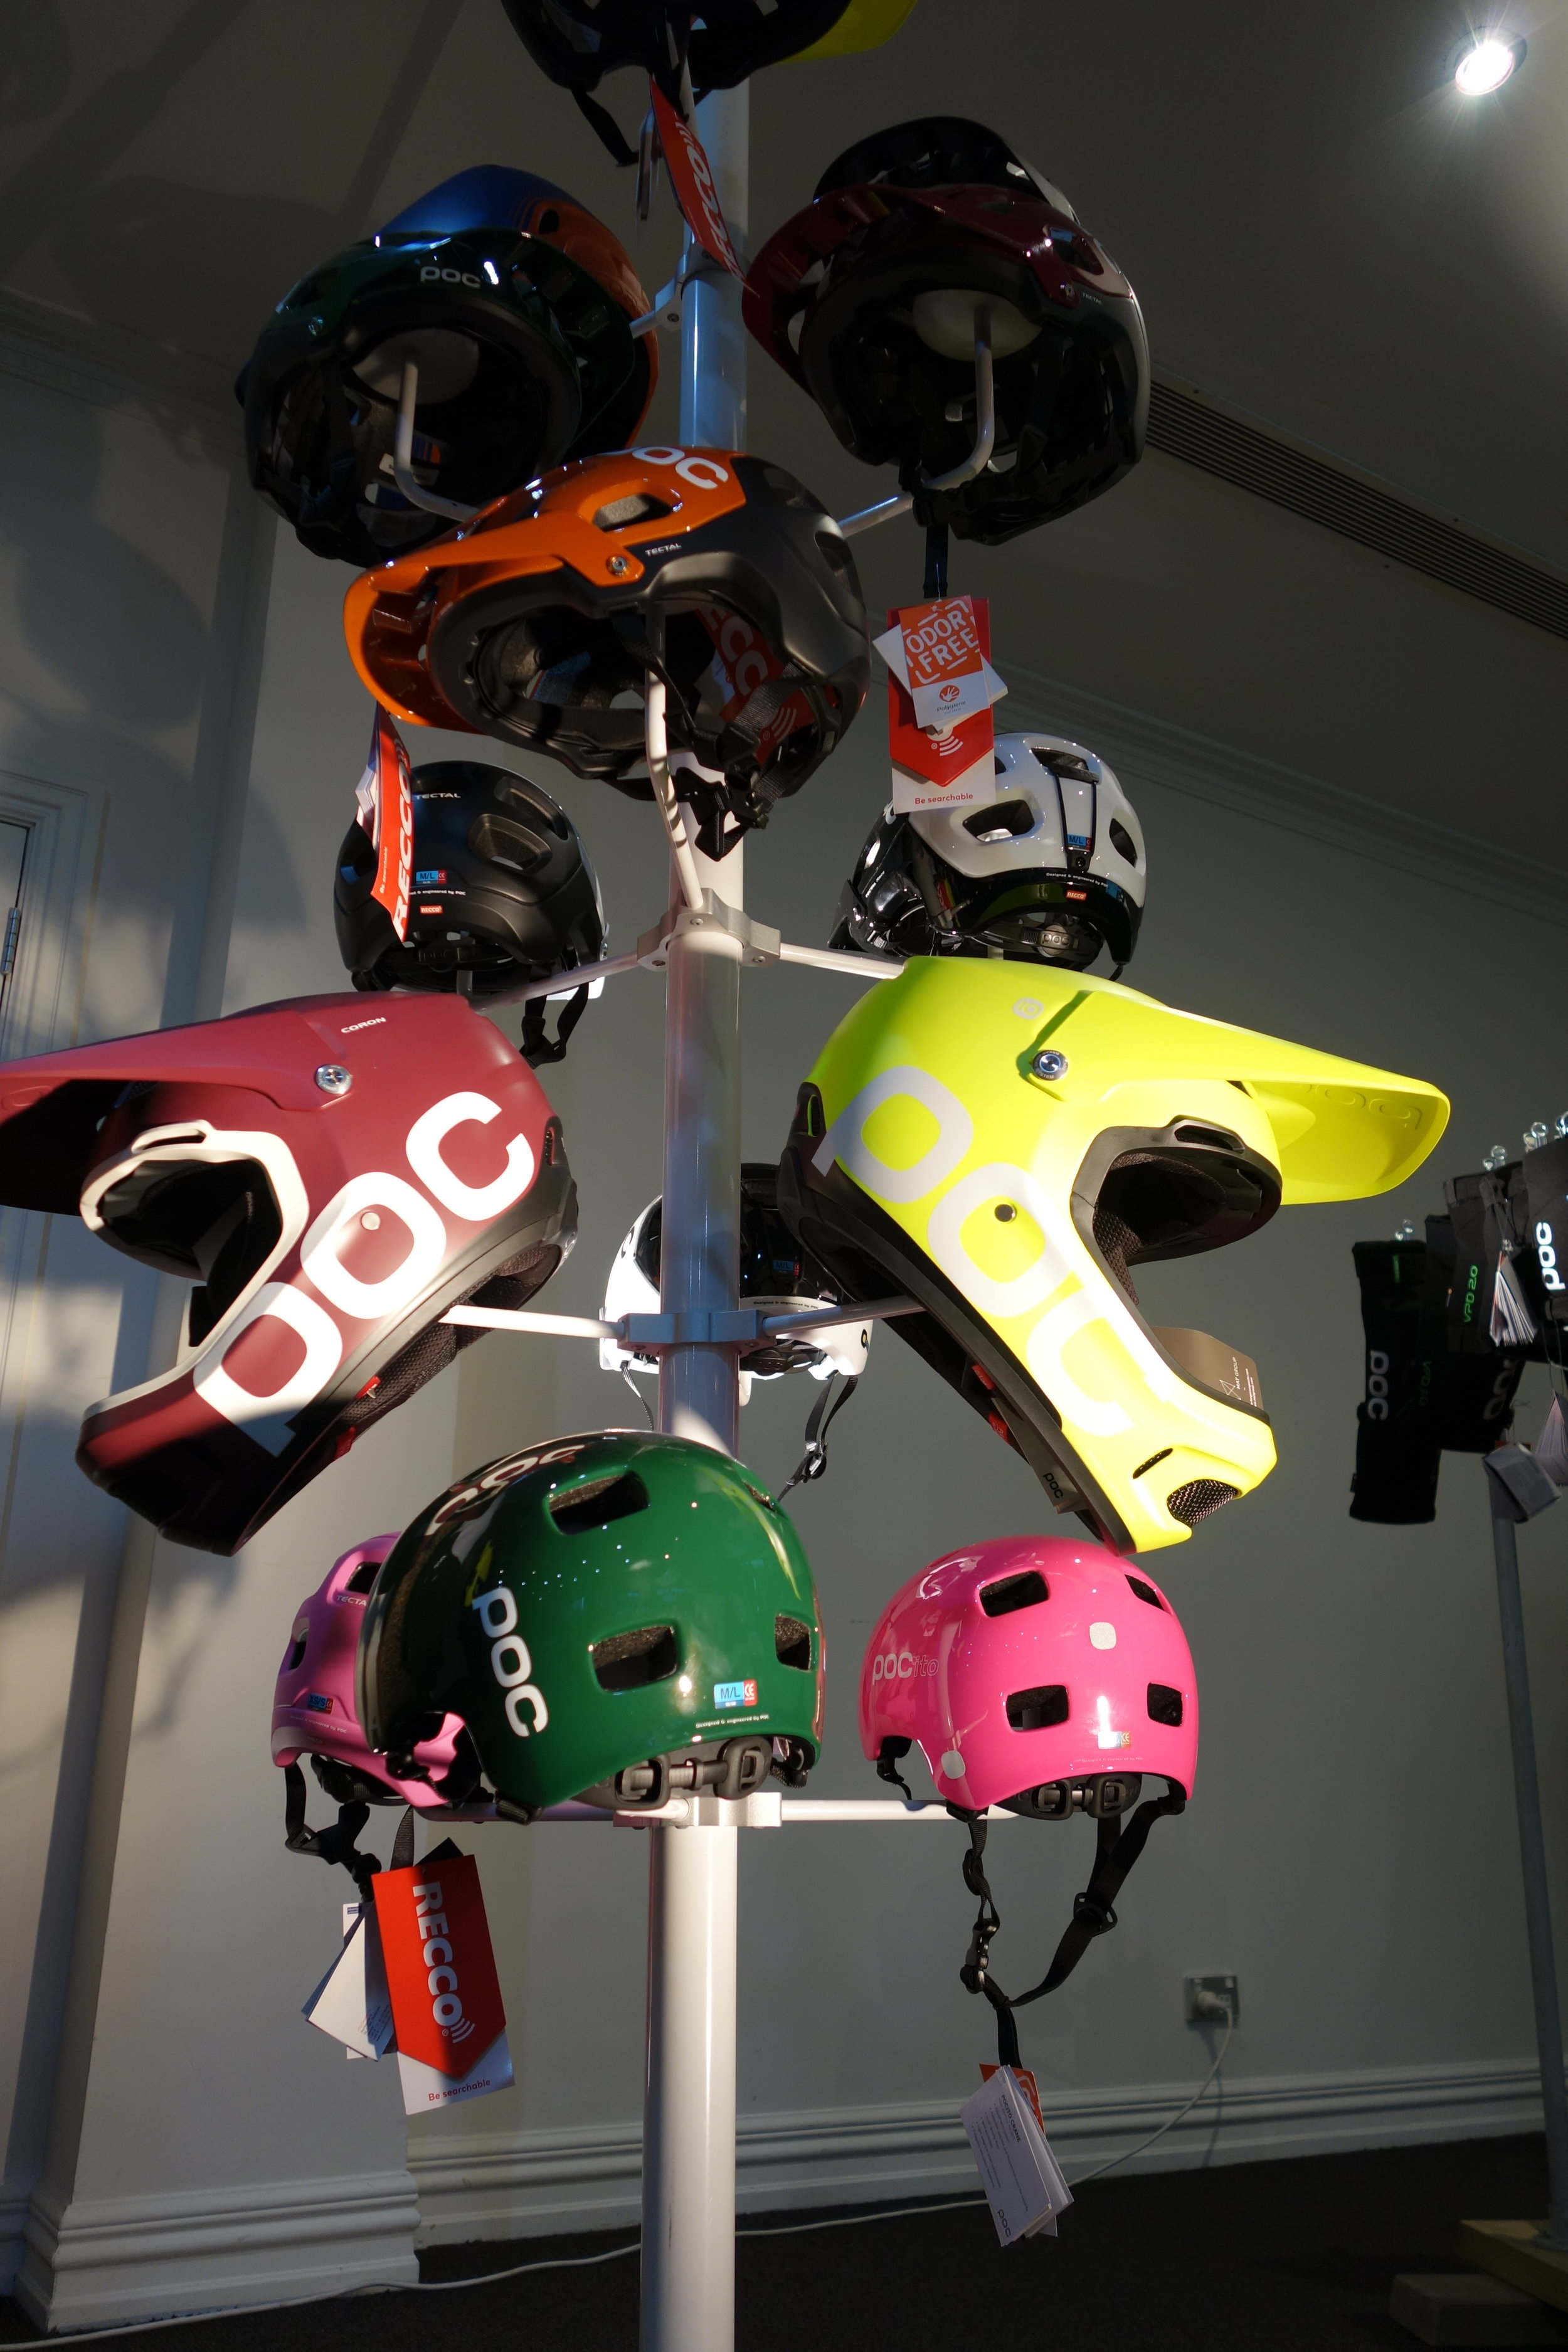 Some new colours in the POC helmet lineup